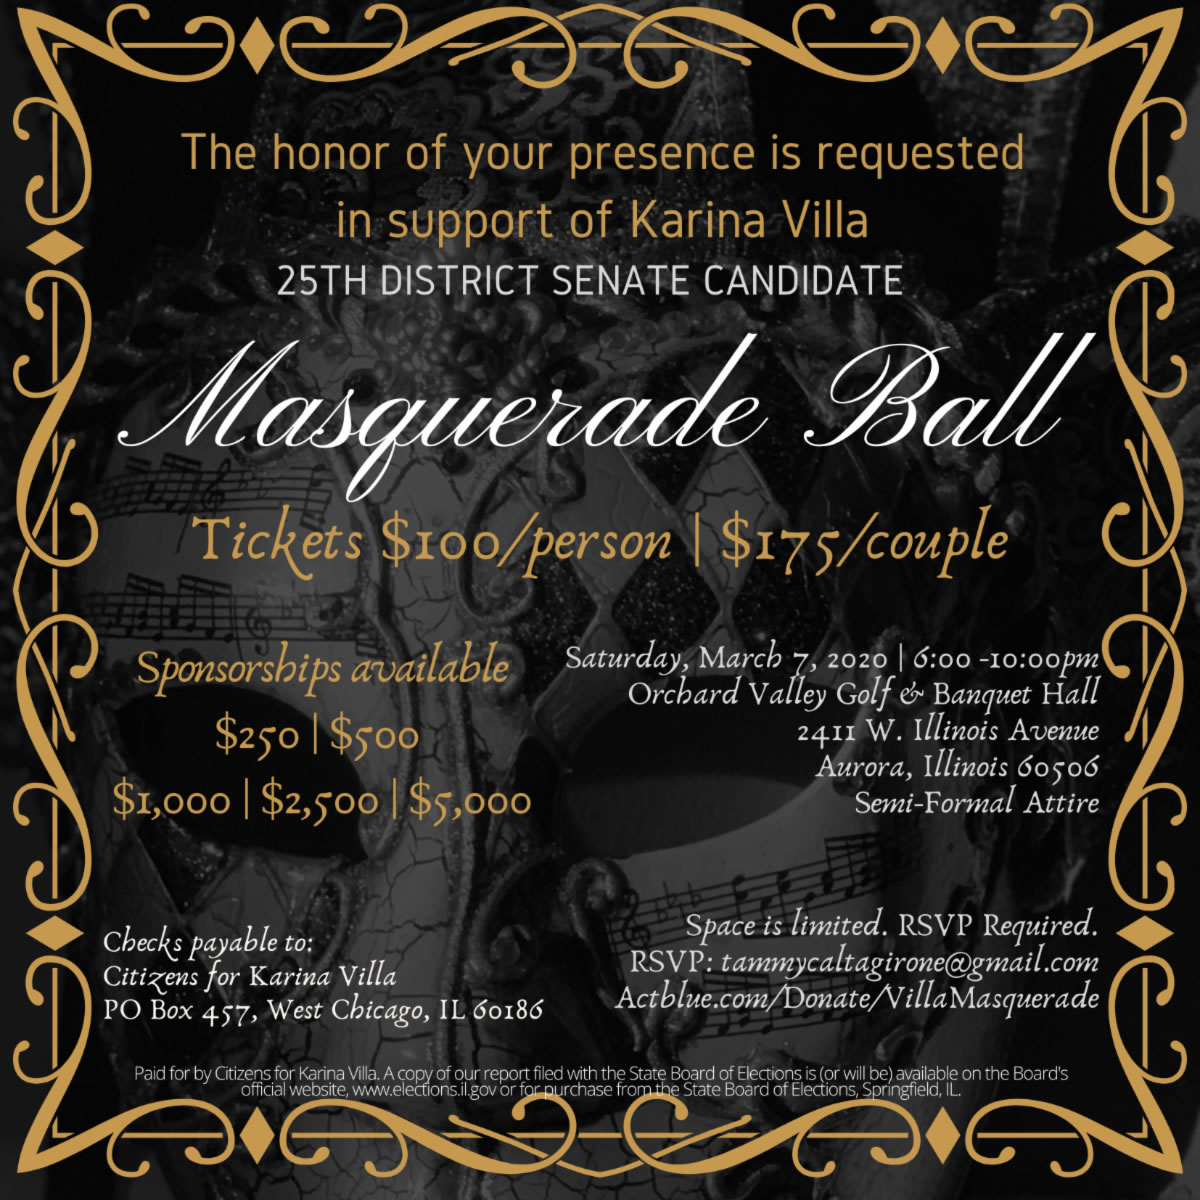 Karina Villa Masquerade Ball @ Orchard Valley Golf & Banquet Hall